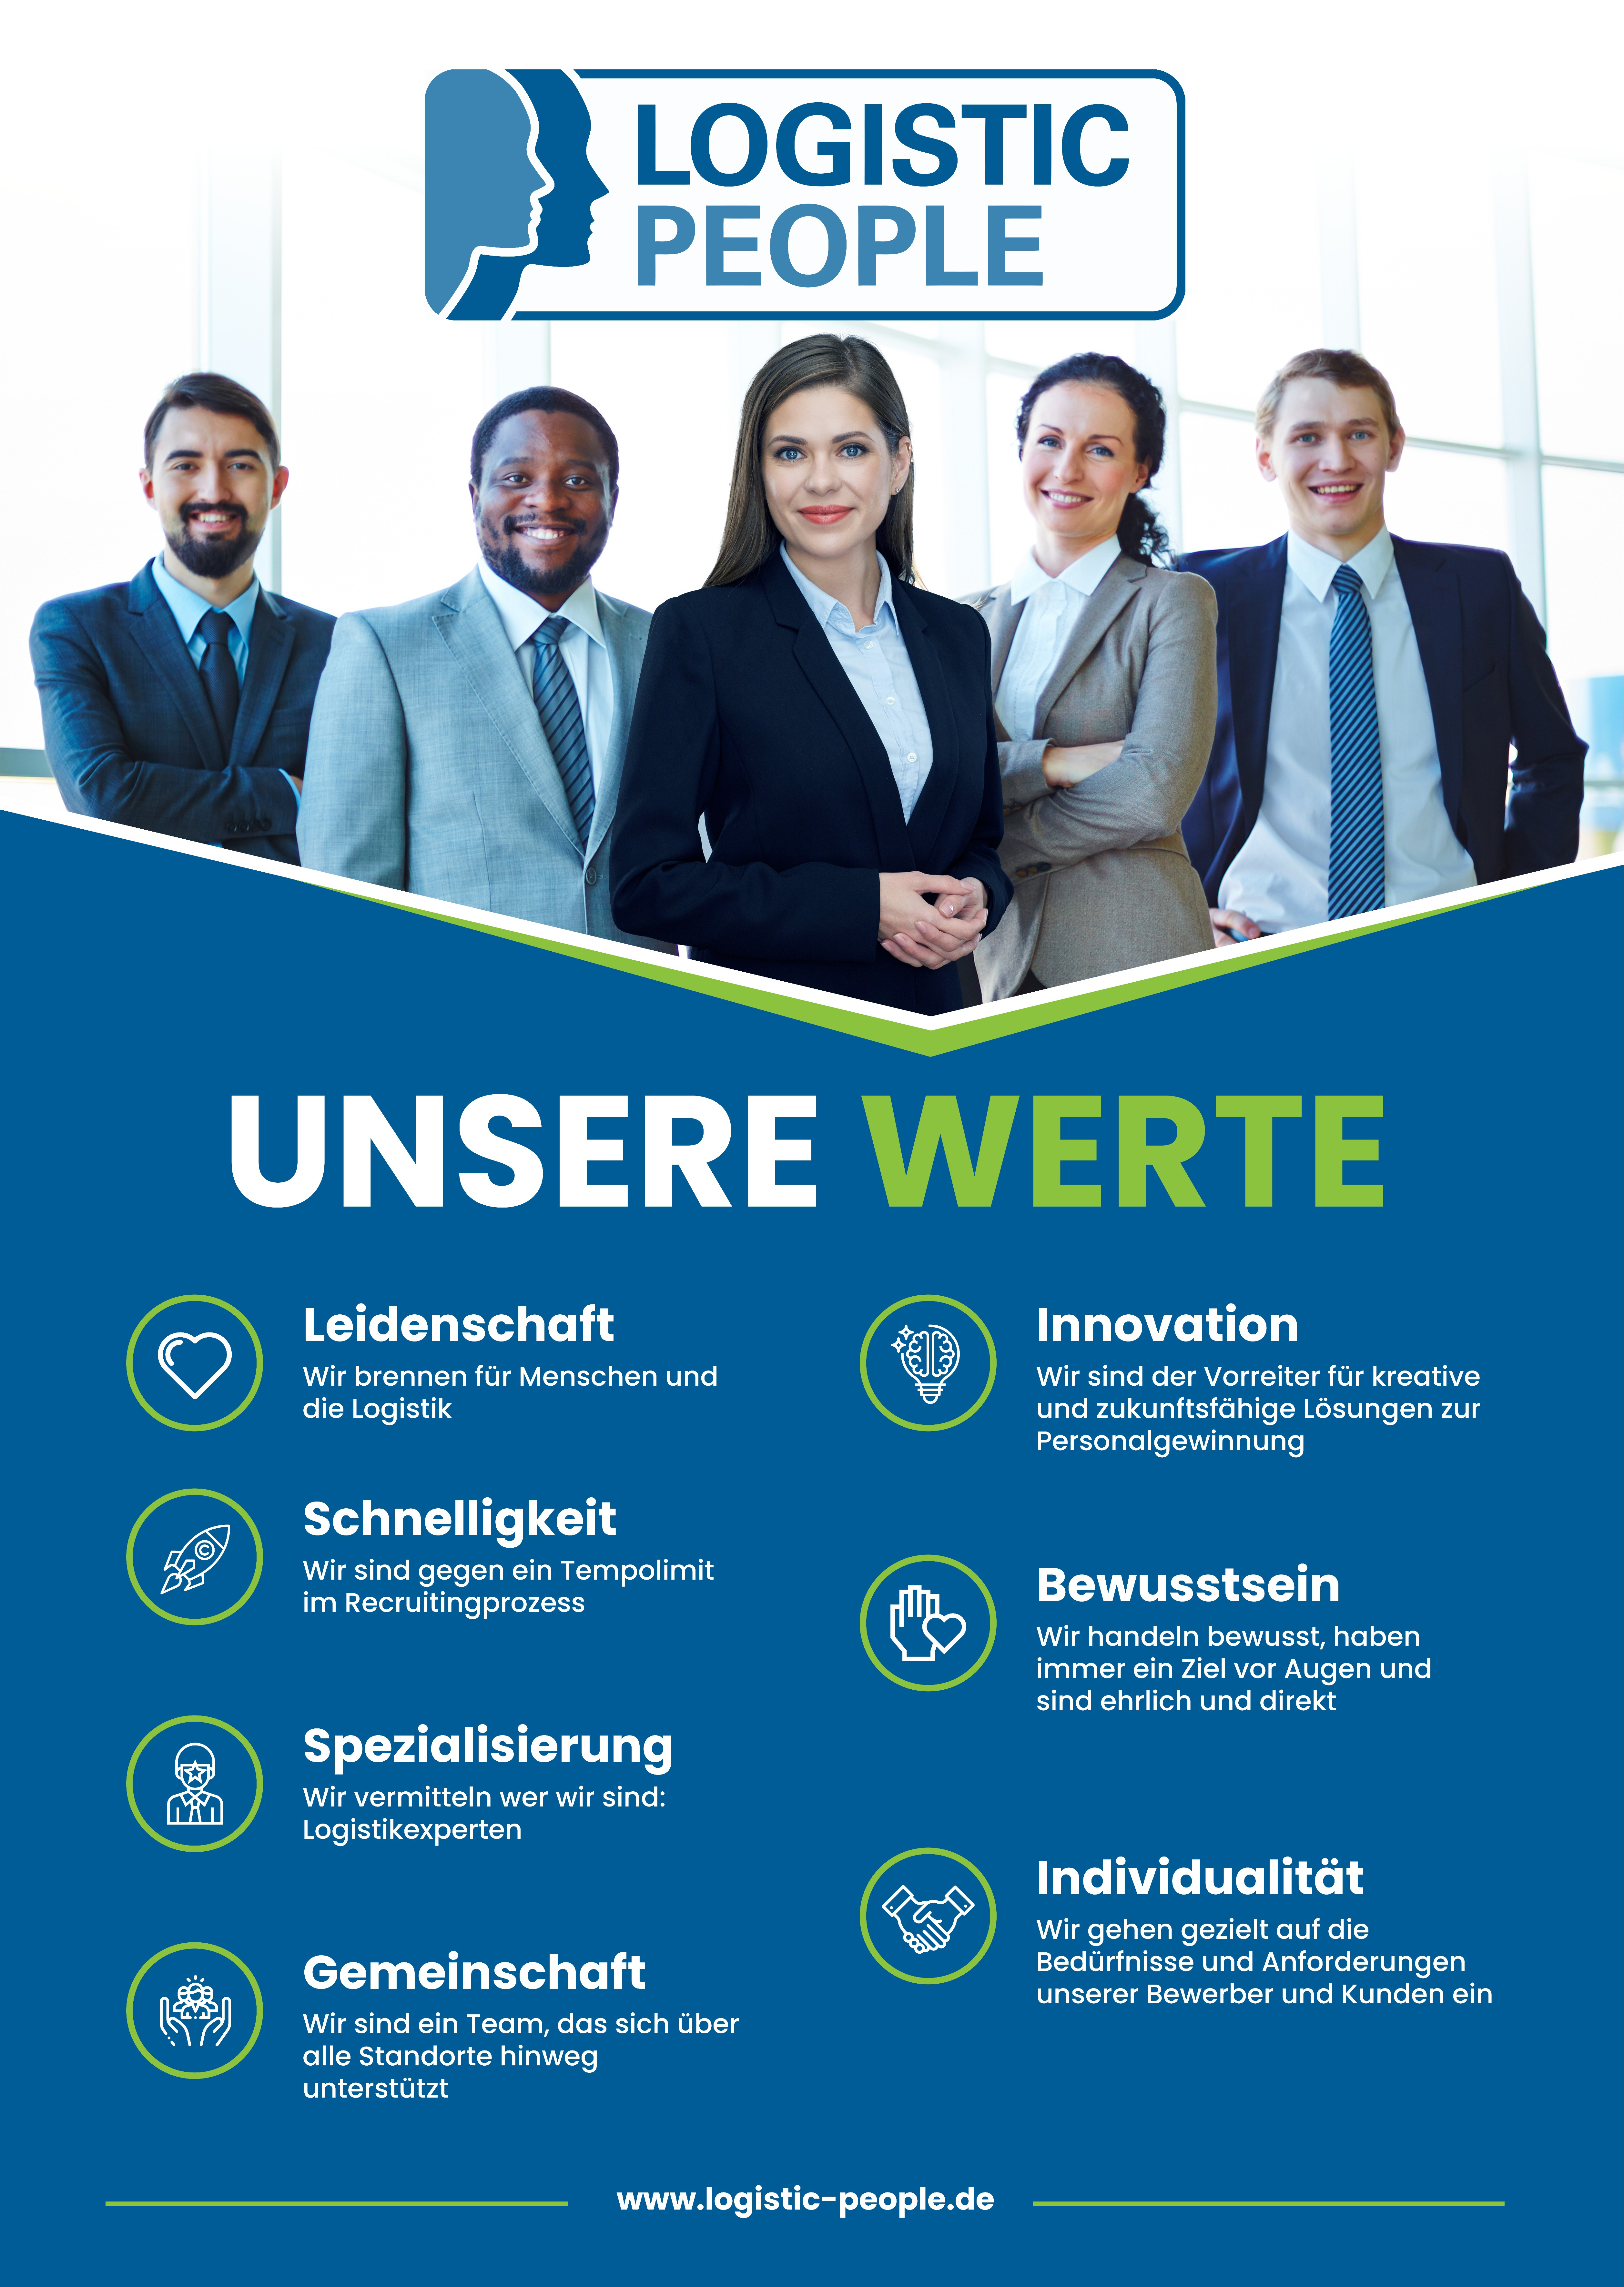 Poster about Company Values for Recruiting staff Company